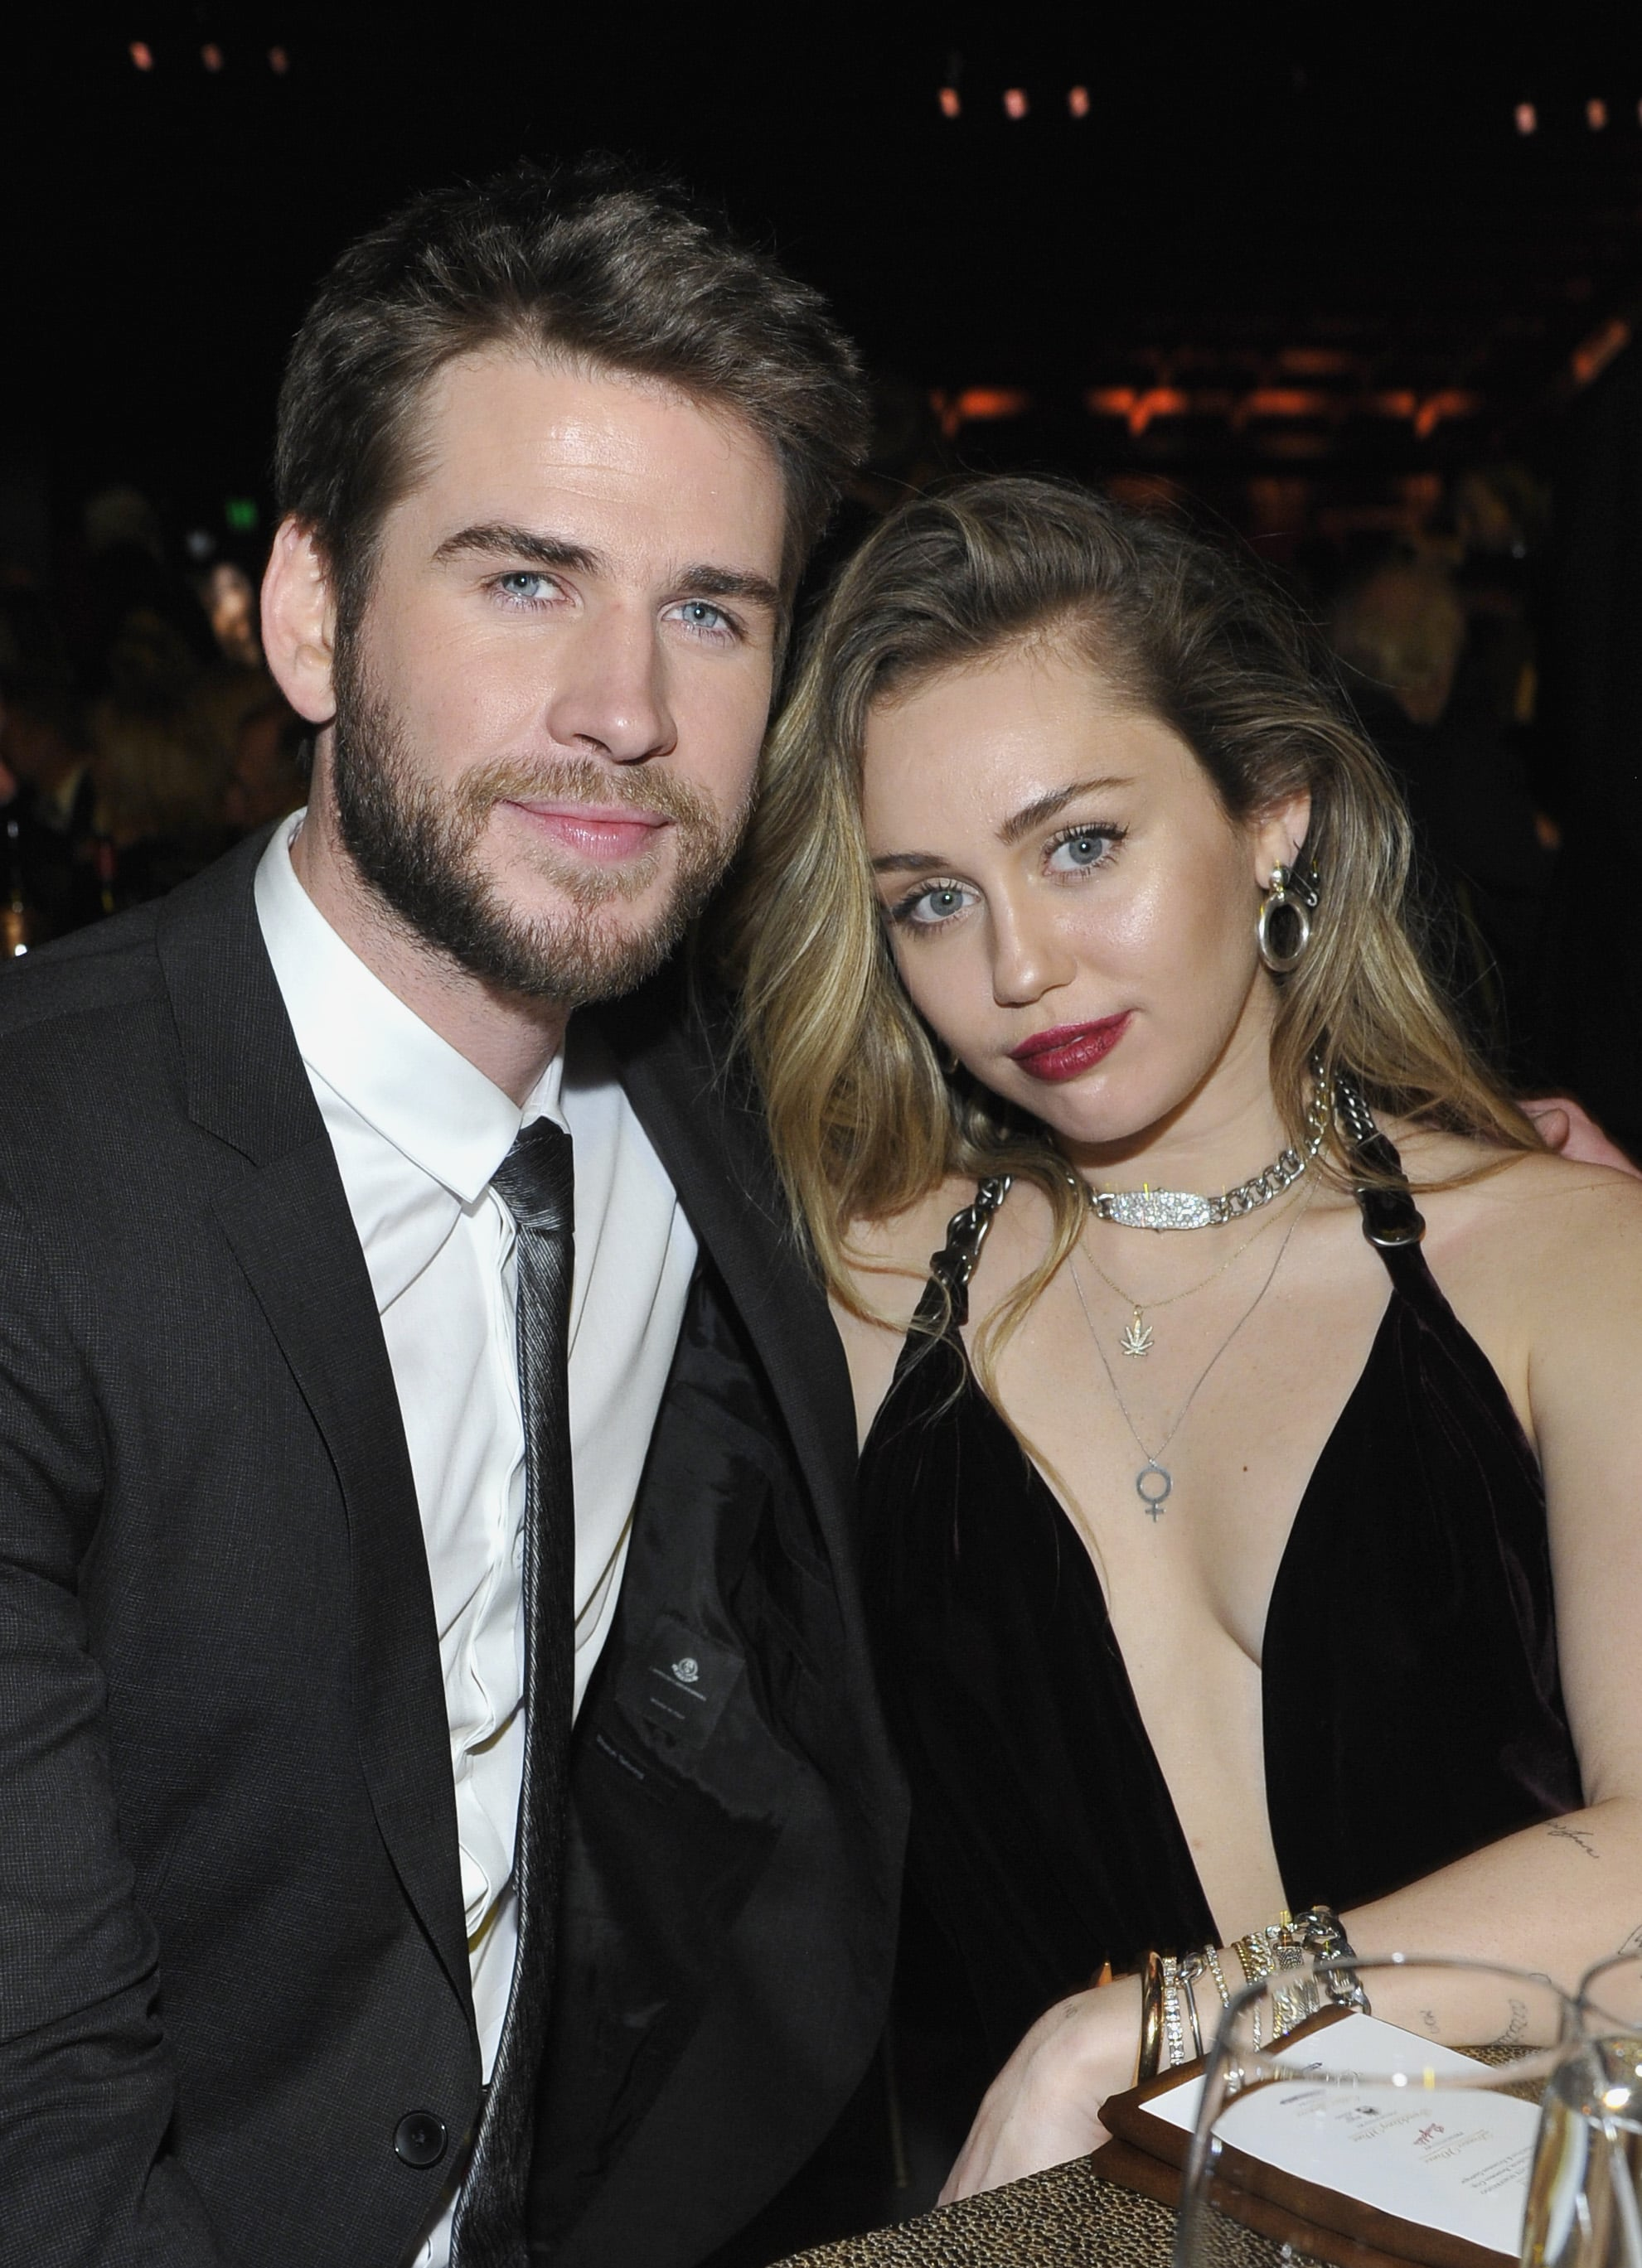 CULVER CITY, CA - JANUARY 26:  Honouree Liam Hemsworth (L) and Miley Cyrus attend the 2019 G'Day USA Gala at 3LABS on January 26, 2019 in Culver City, California.  (Photo by John Sciulli/Getty Images for G'Day USA )